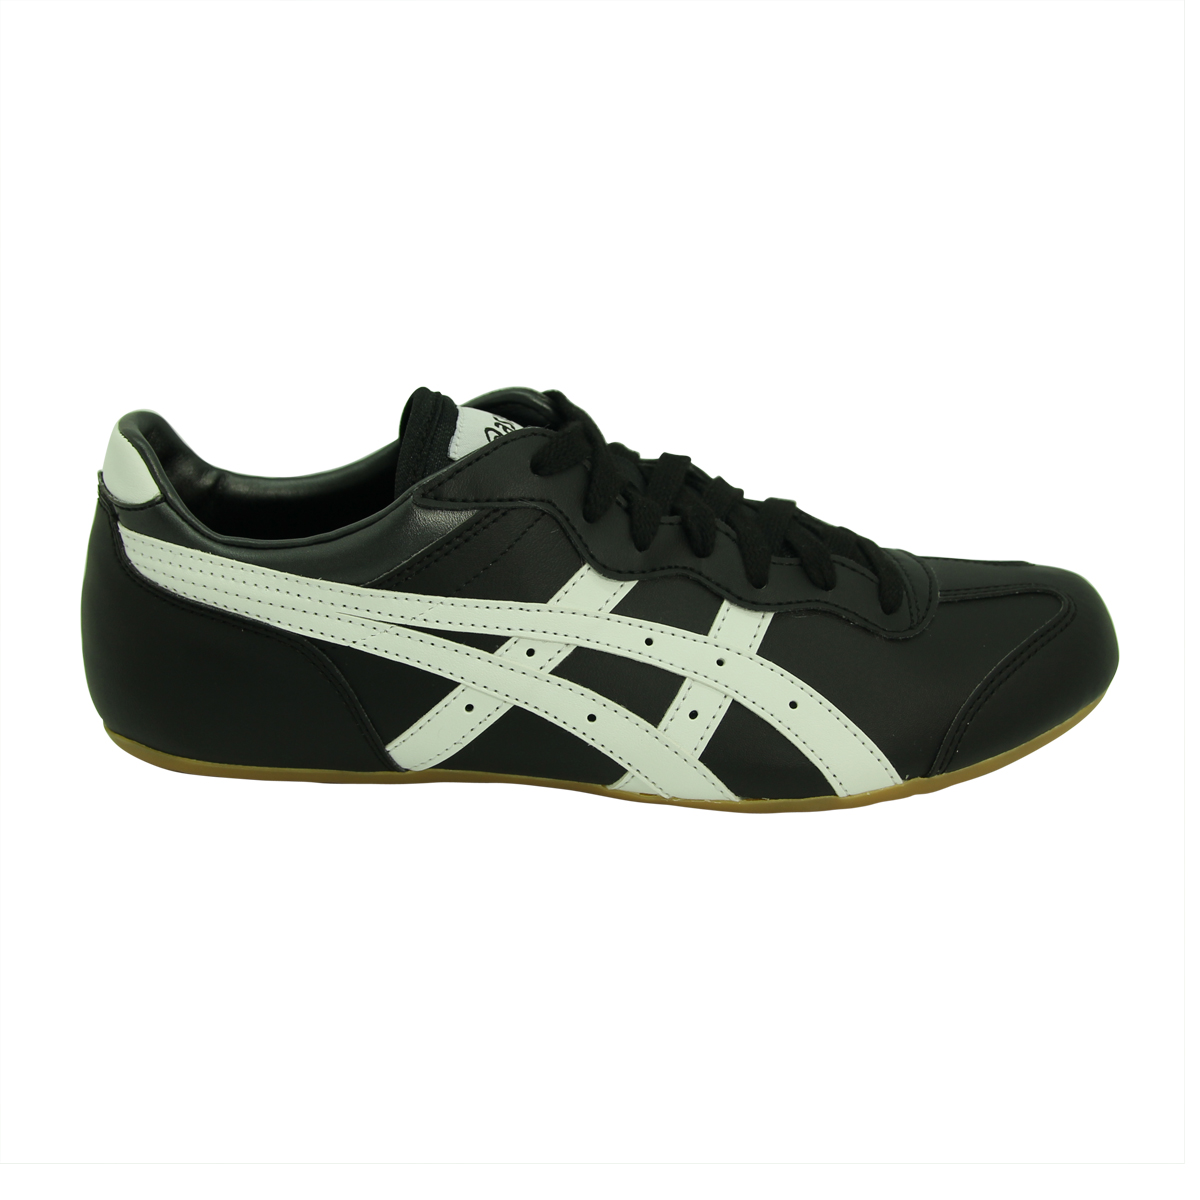 ASICS Whizzer Lo Womens SNEAKERS 7.5. About this product. Picture 1 of 12  ...